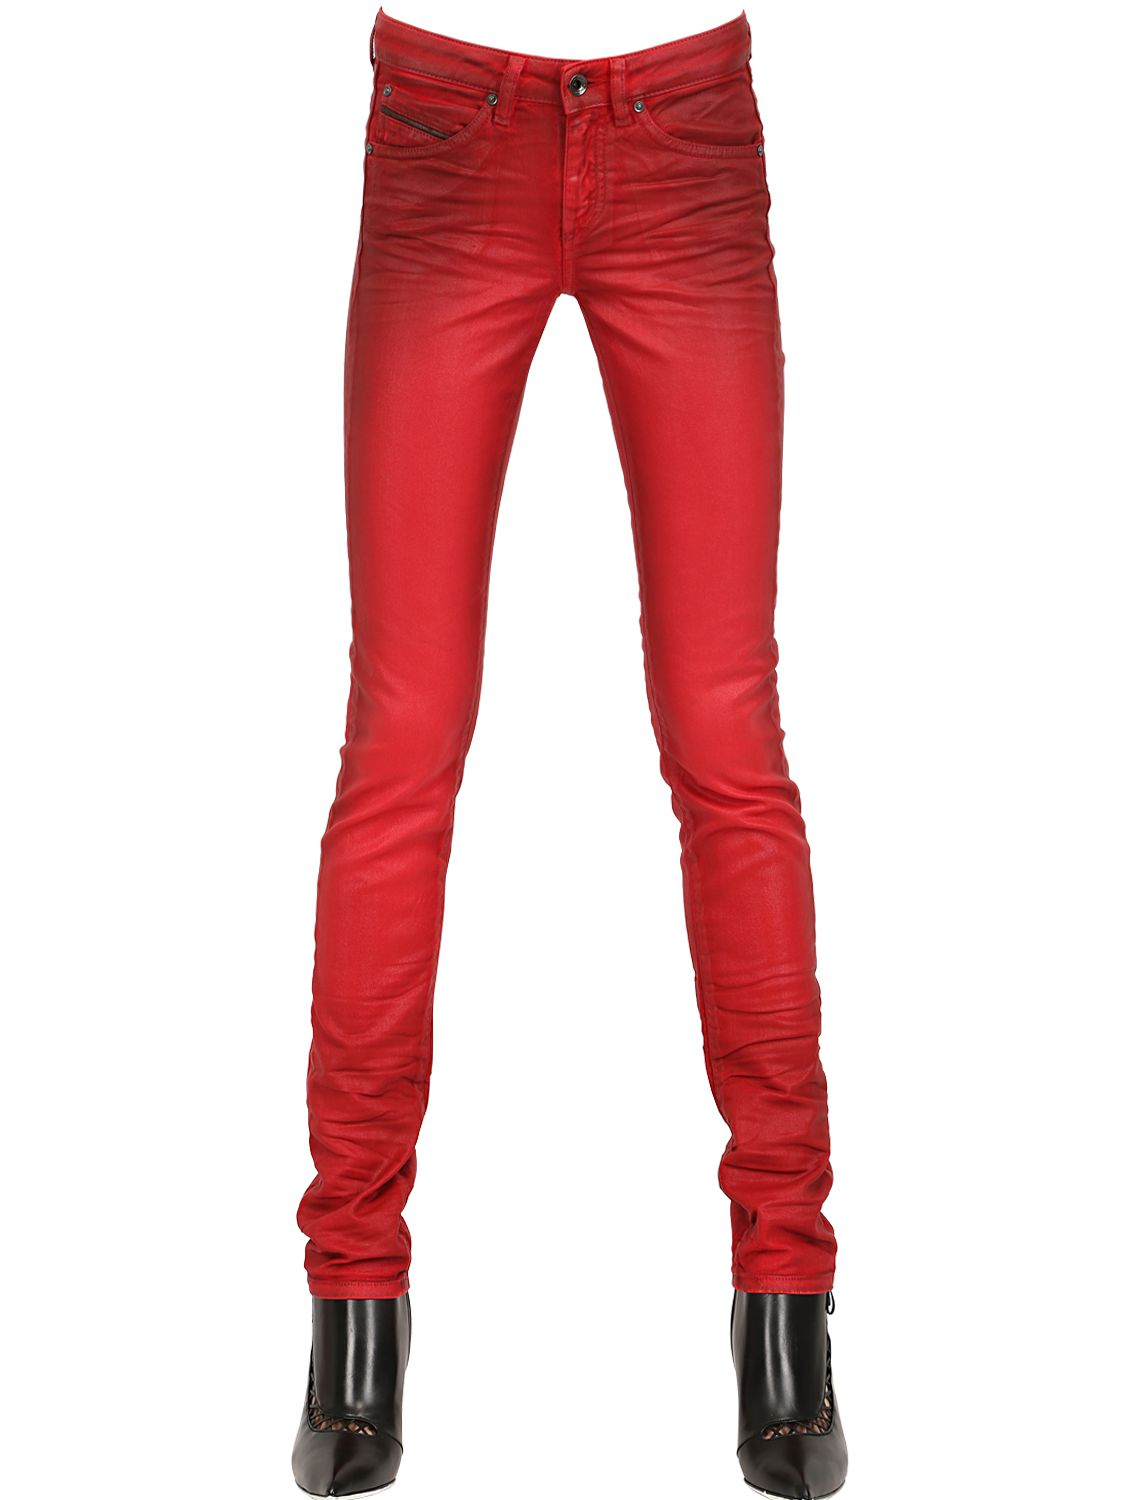 Diesel Black Gold Painted Stretch Shiny Denim Jeans In Red